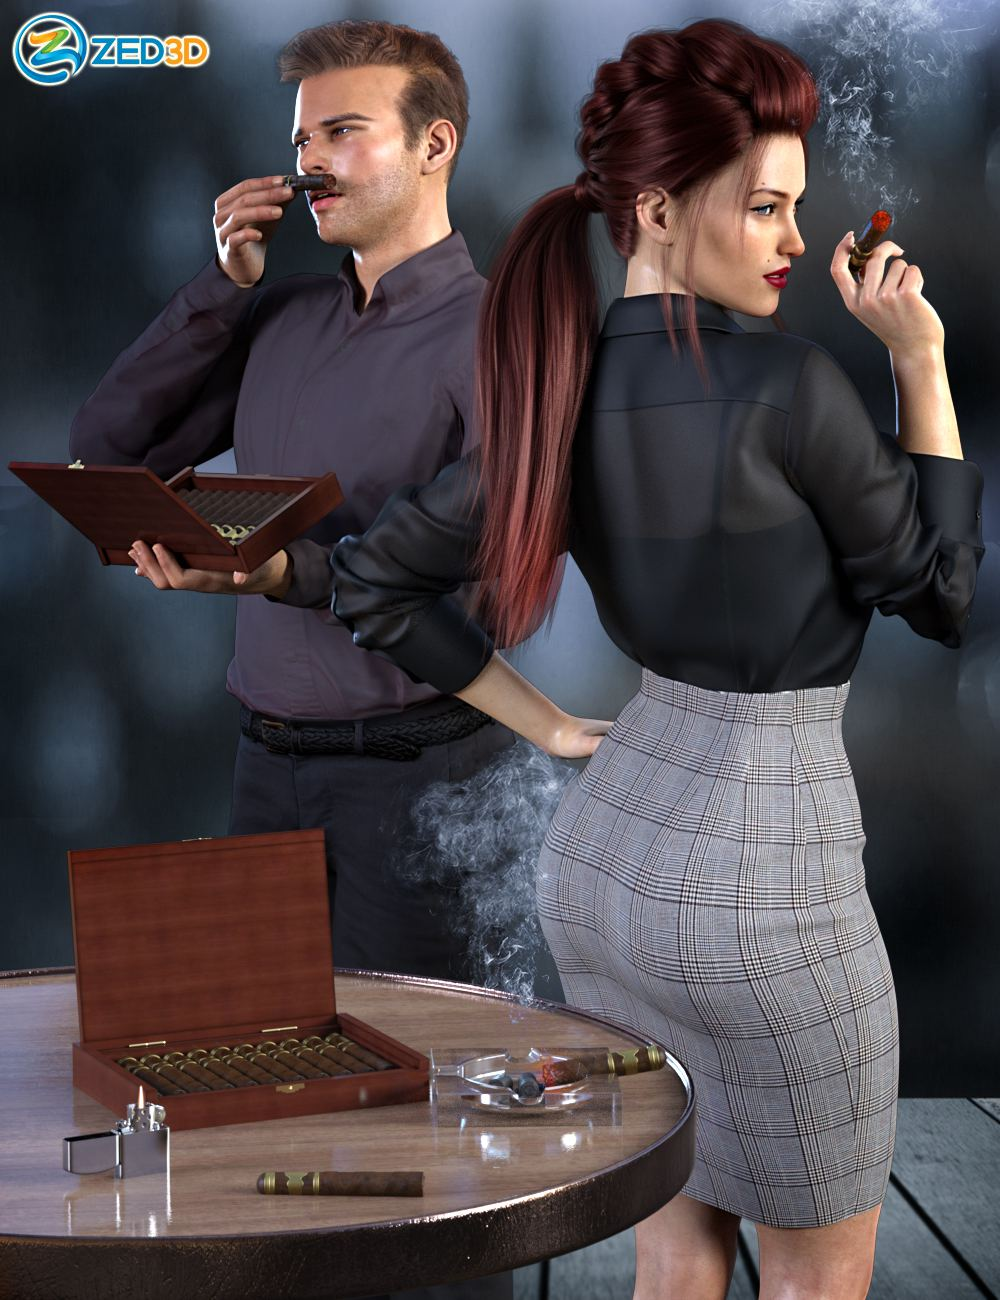 Z Smoke and Cigars Props and Poses for Genesis 8_DAZ3D下载站